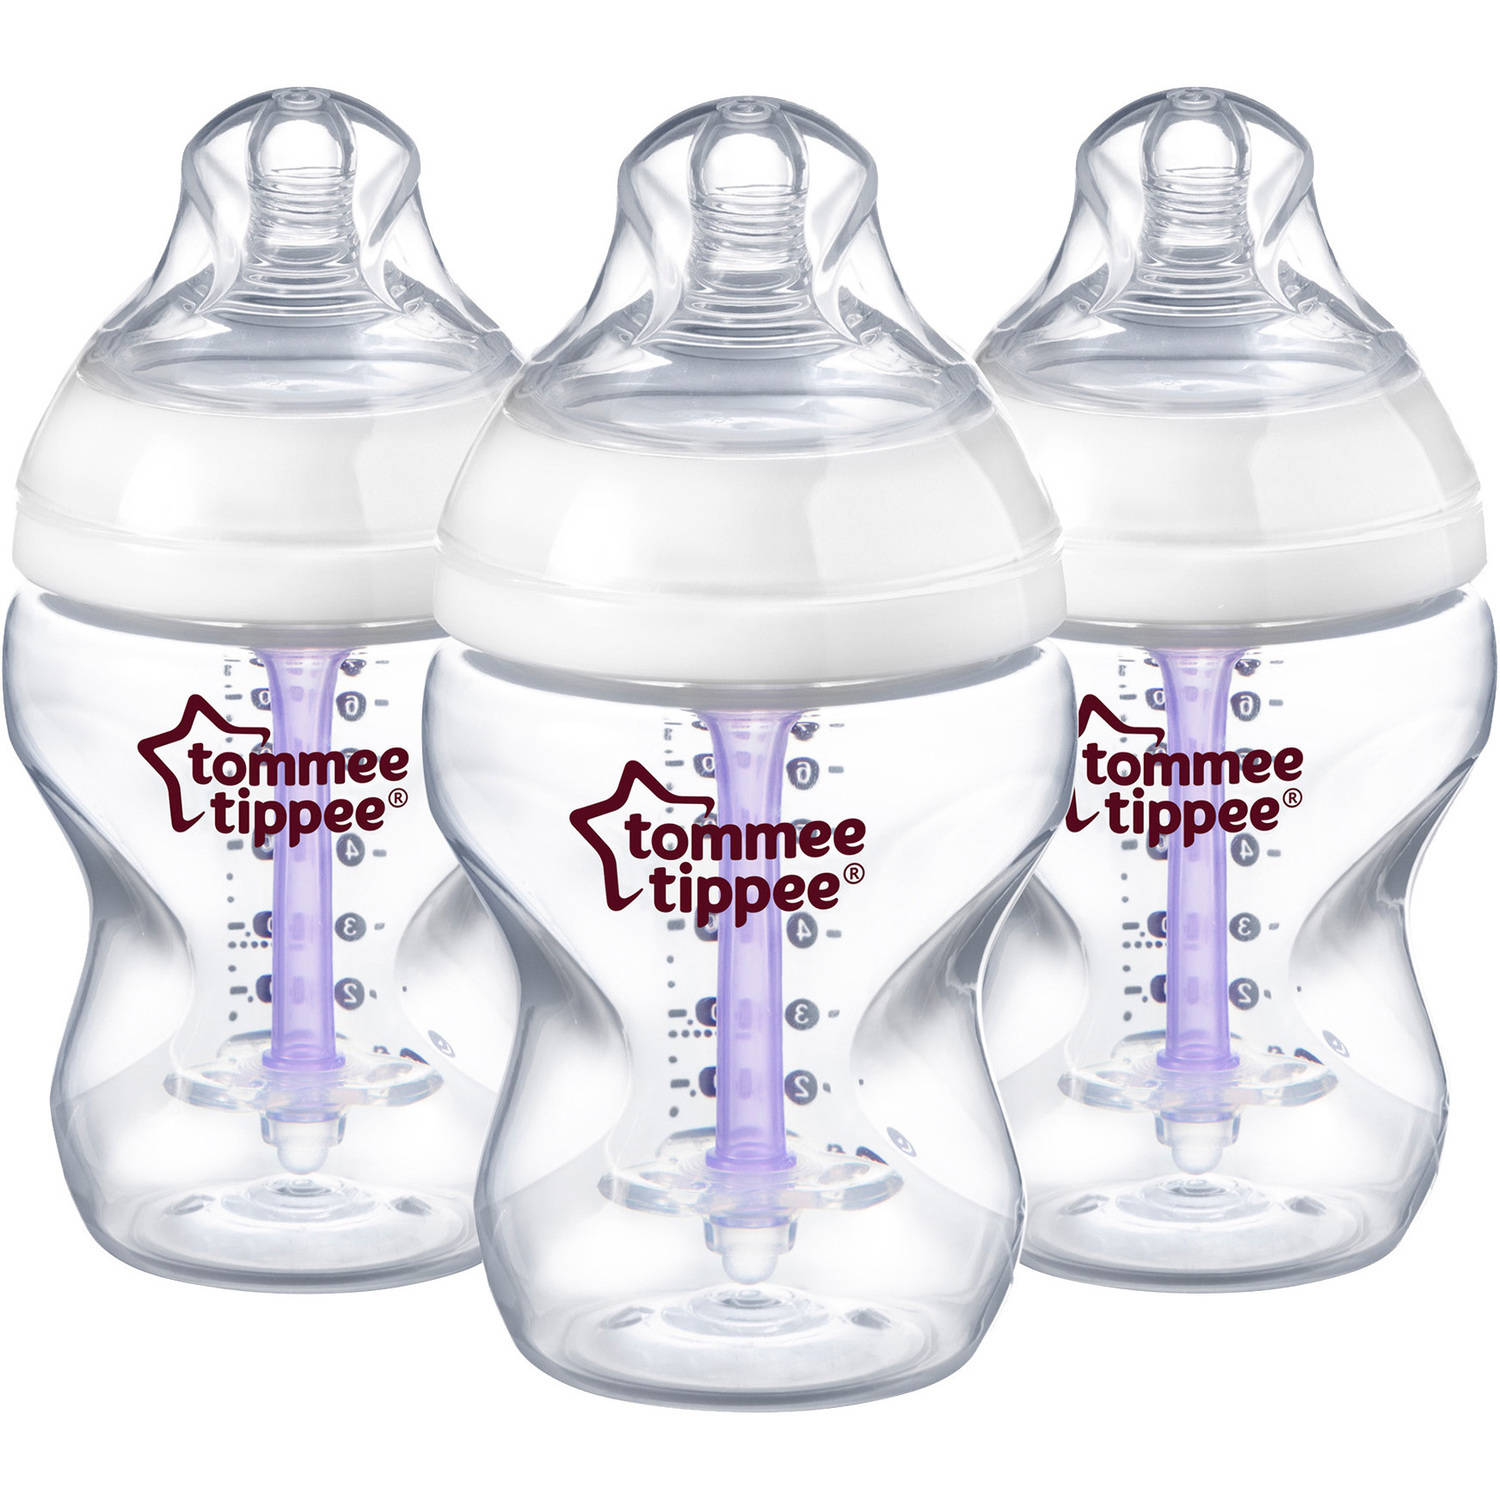 Tommee Tippee Anti-Colic Bottle, 9 oz, 3pk